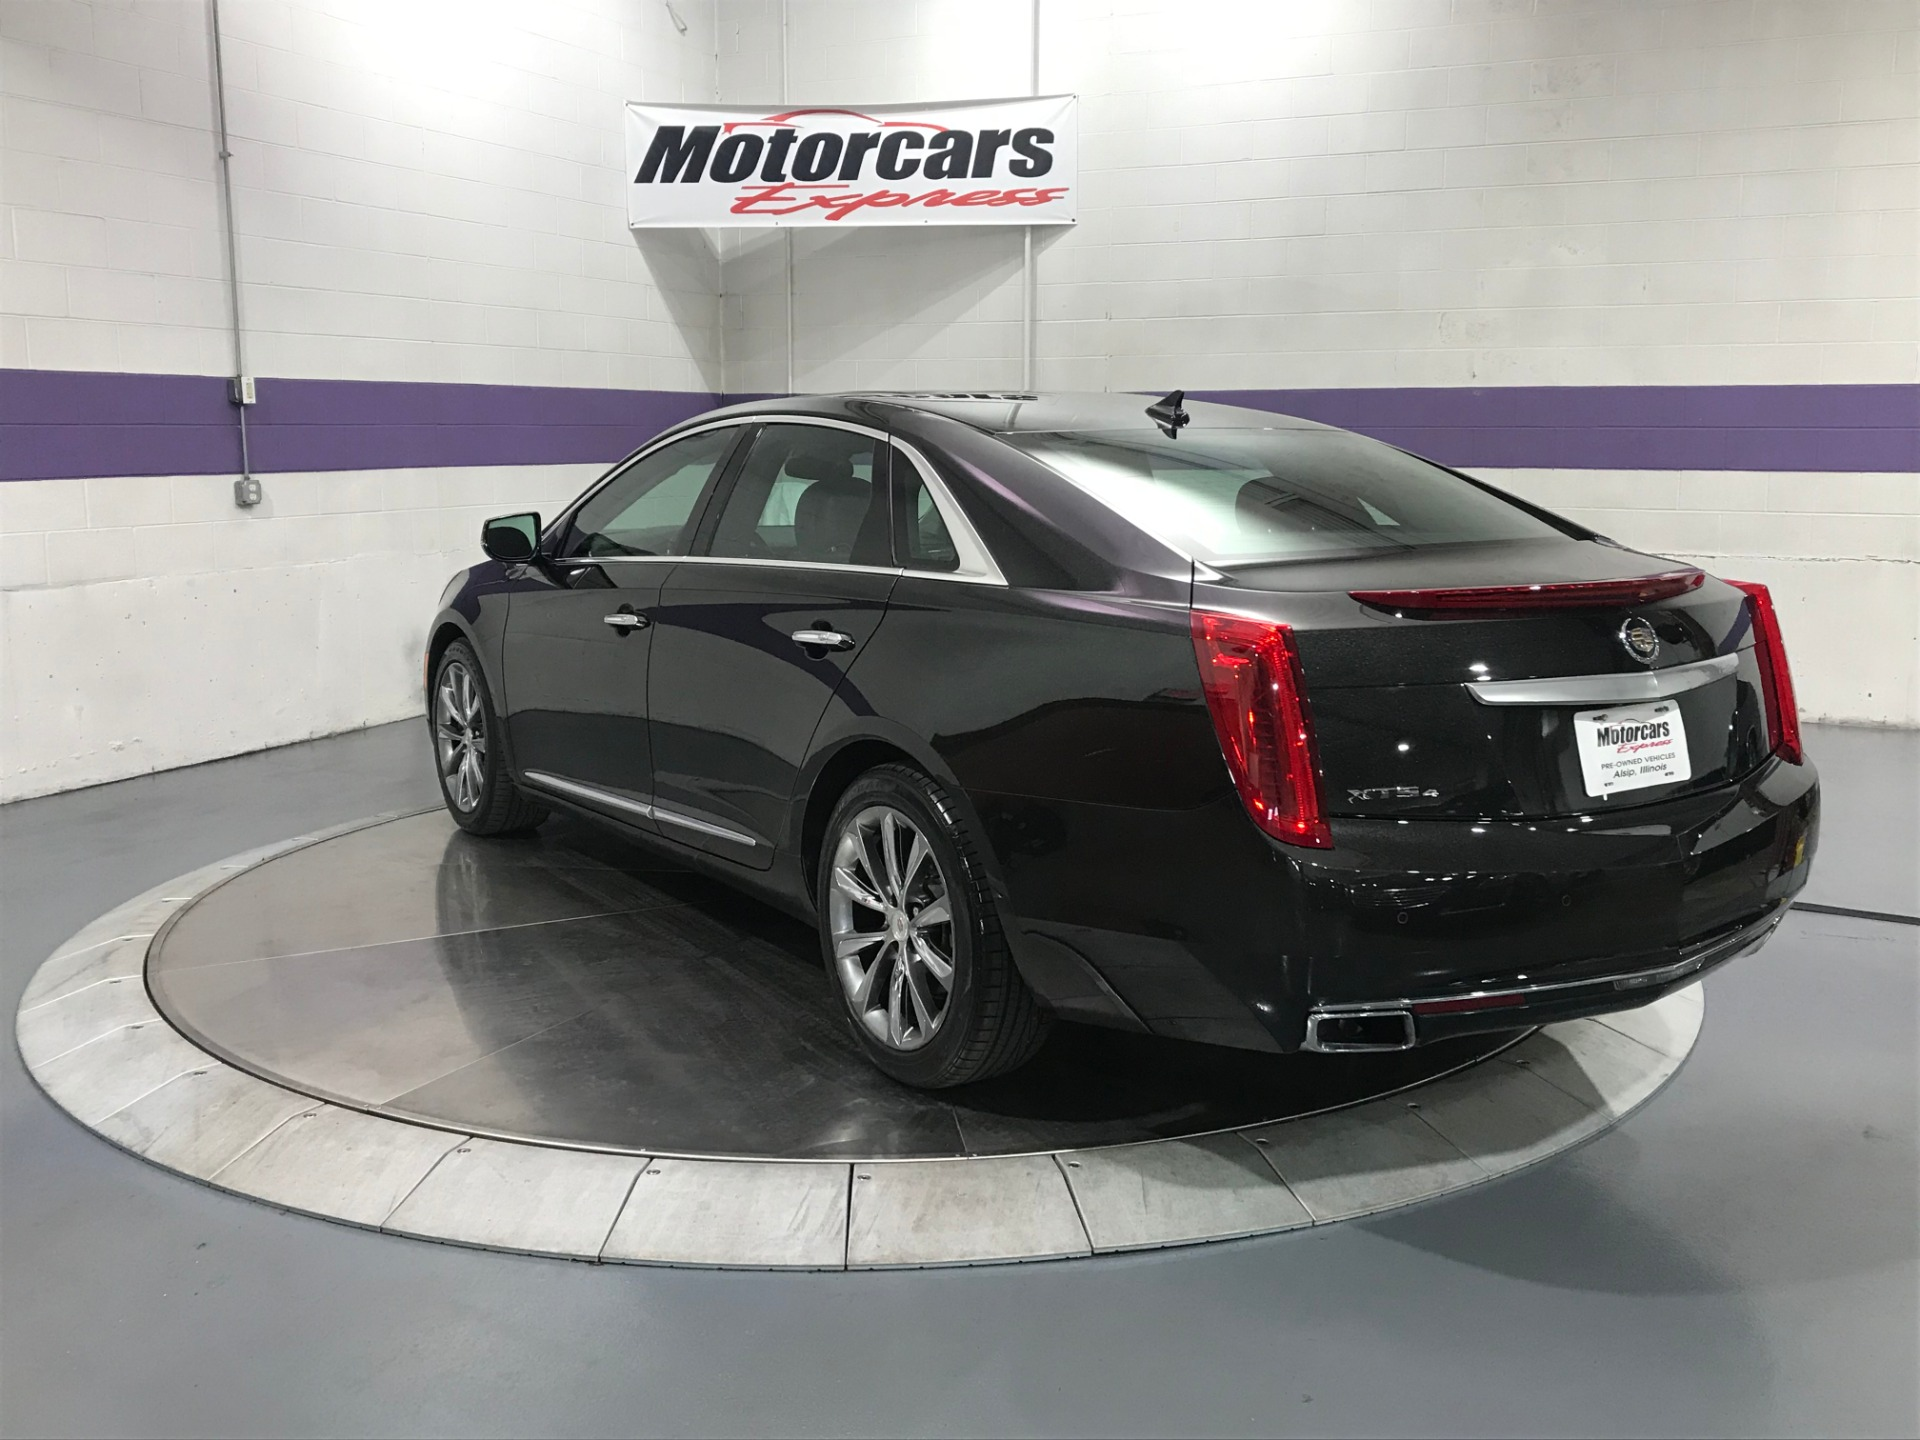 2013 Cadillac XTS Luxury Collection AWD Stock # MCE145 for